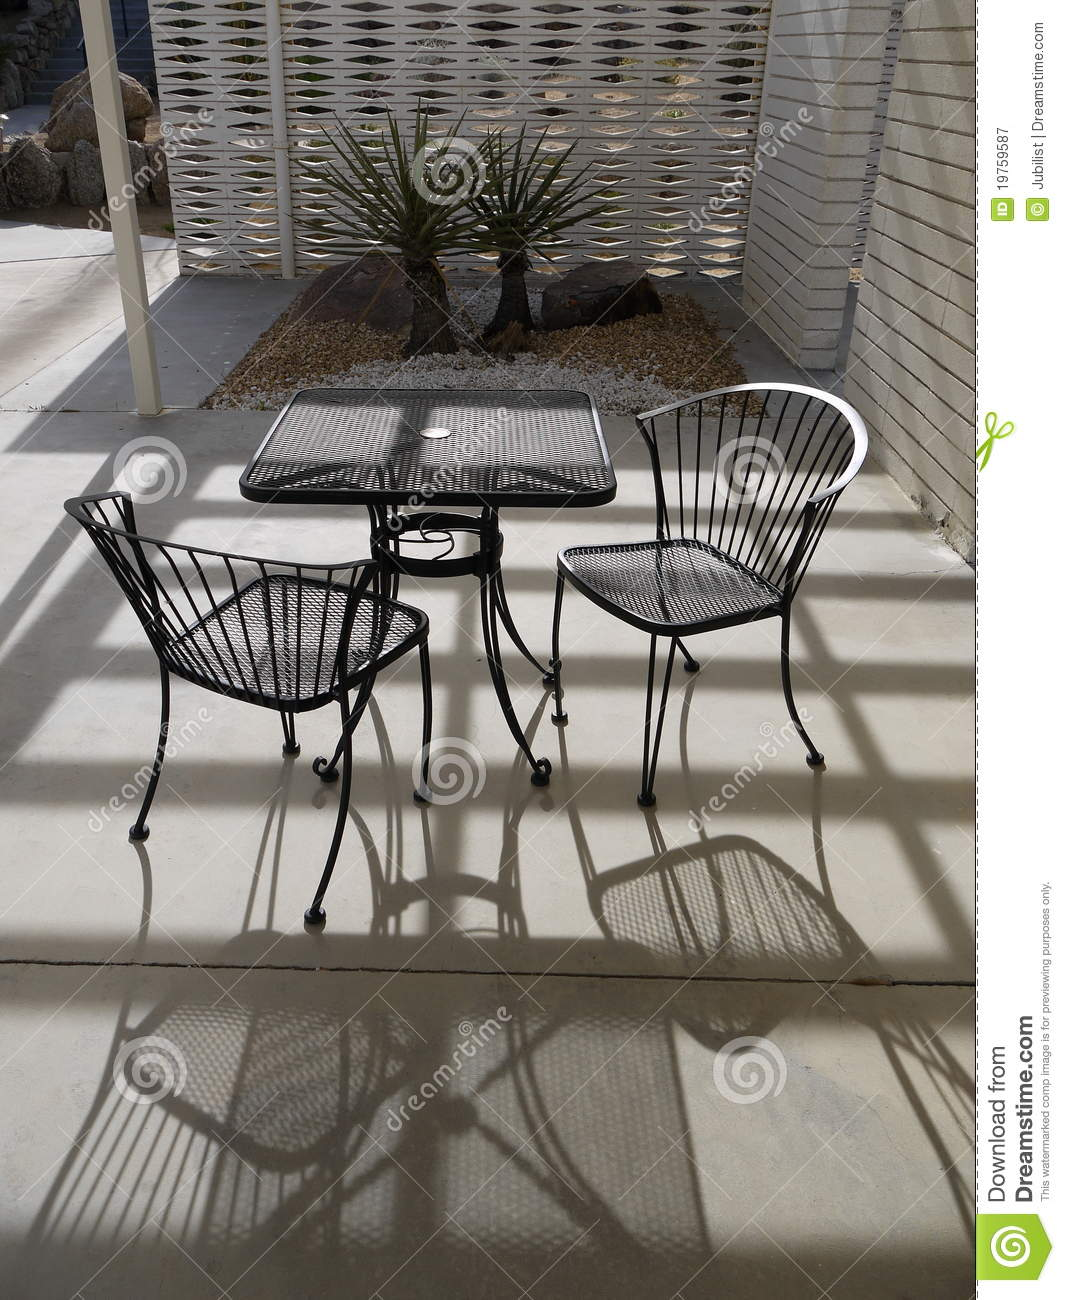 1950s Modernist Garden Table And Chairs Stock Image Image Of Metal Landscaping 19759587